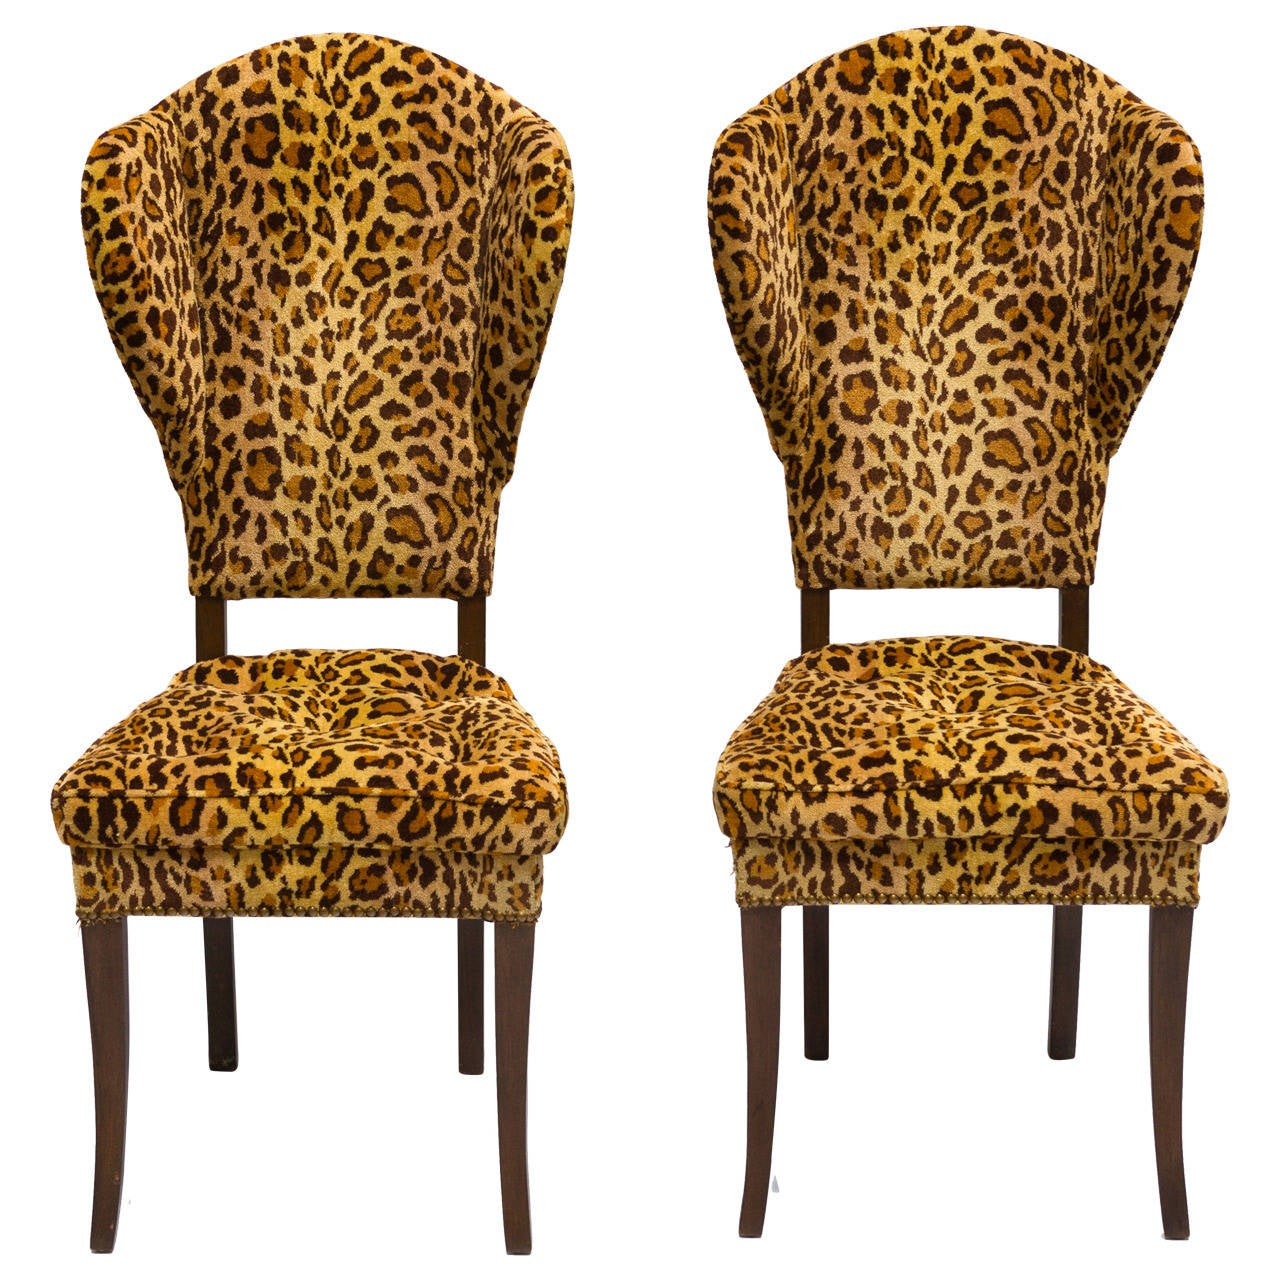 Cheetah Chair Pair Of Mid Century Leopard Print Occasional Chairs At 1stdibs